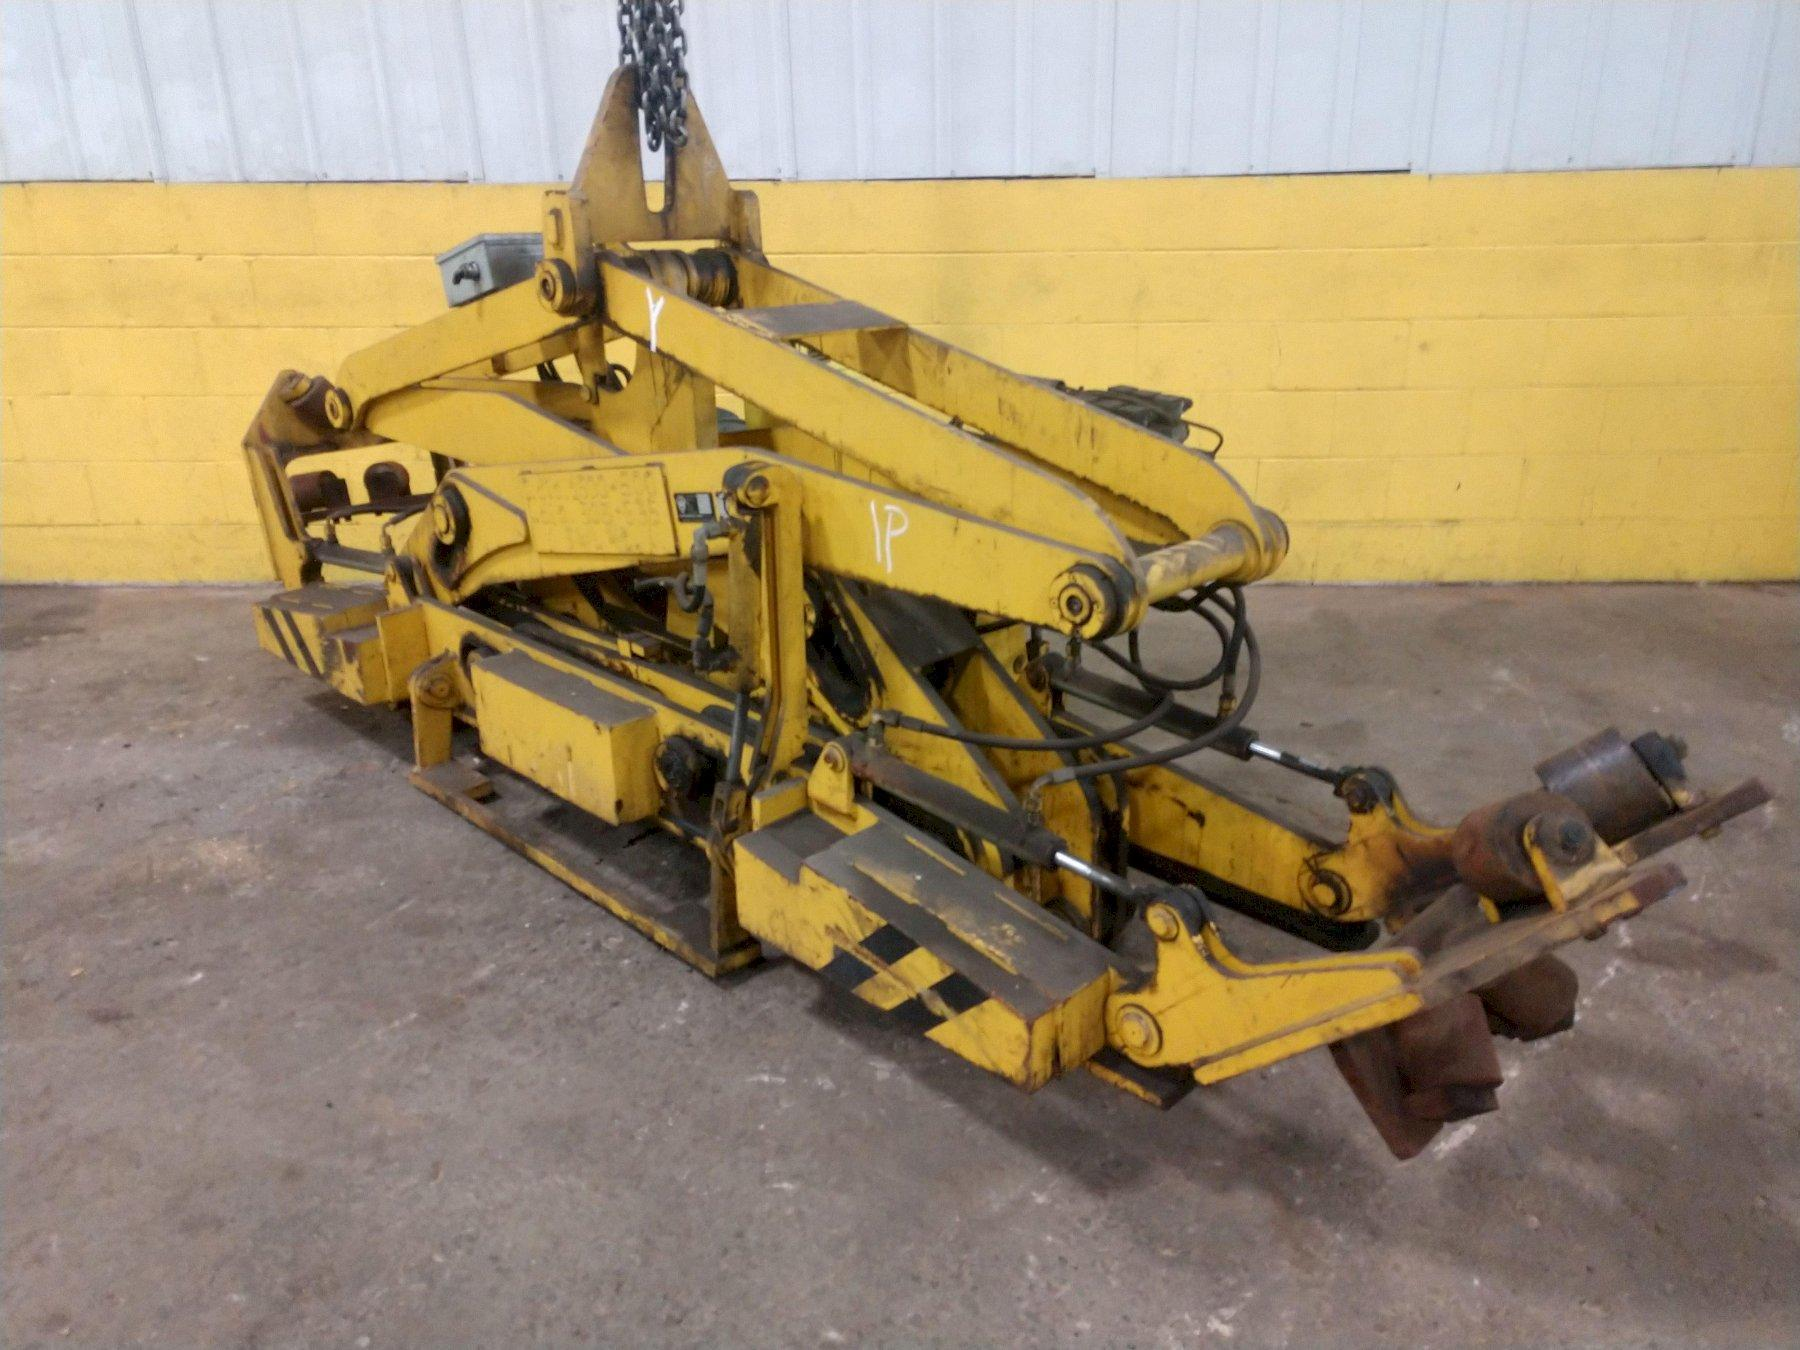 8500 LBS LUDWIG BONNHOFF ARTICULATING COIL LIFTER: STOCK #14205